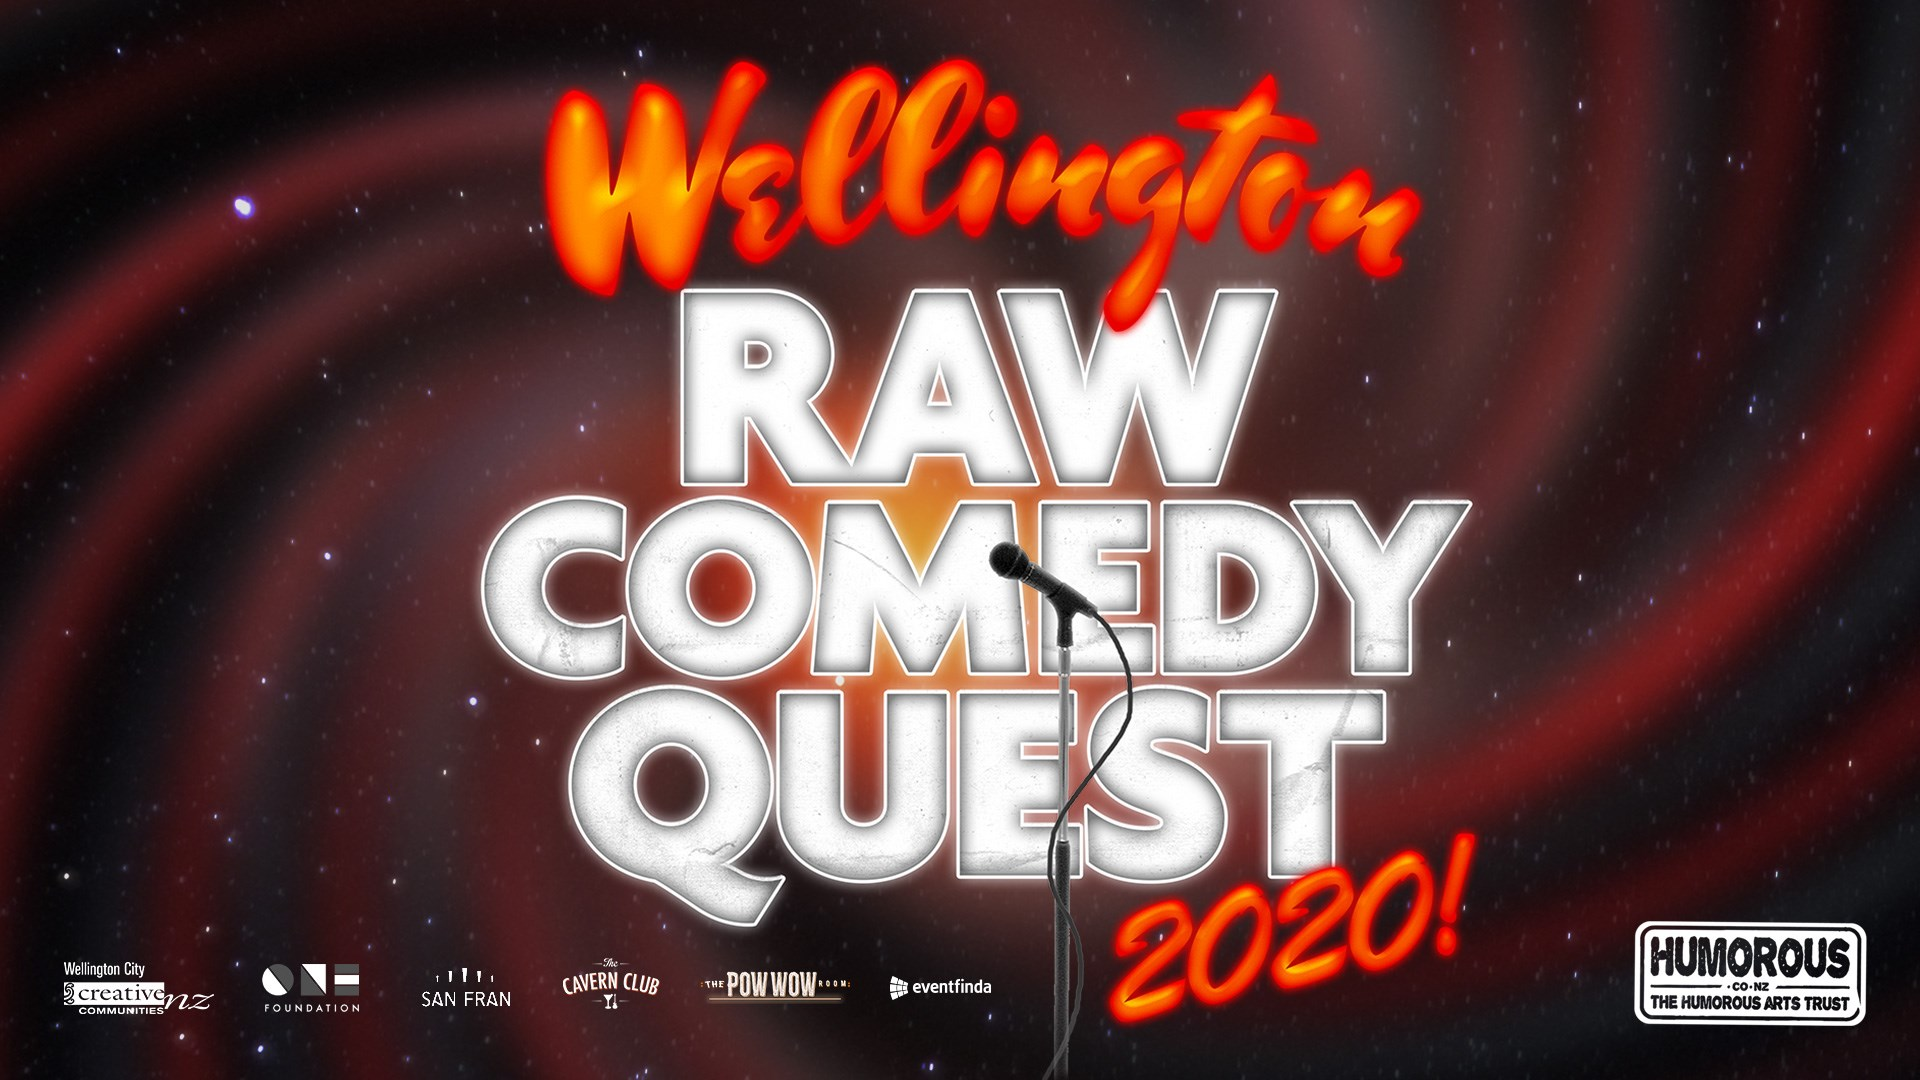 Wellington Raw Comedy Quest Heat #1